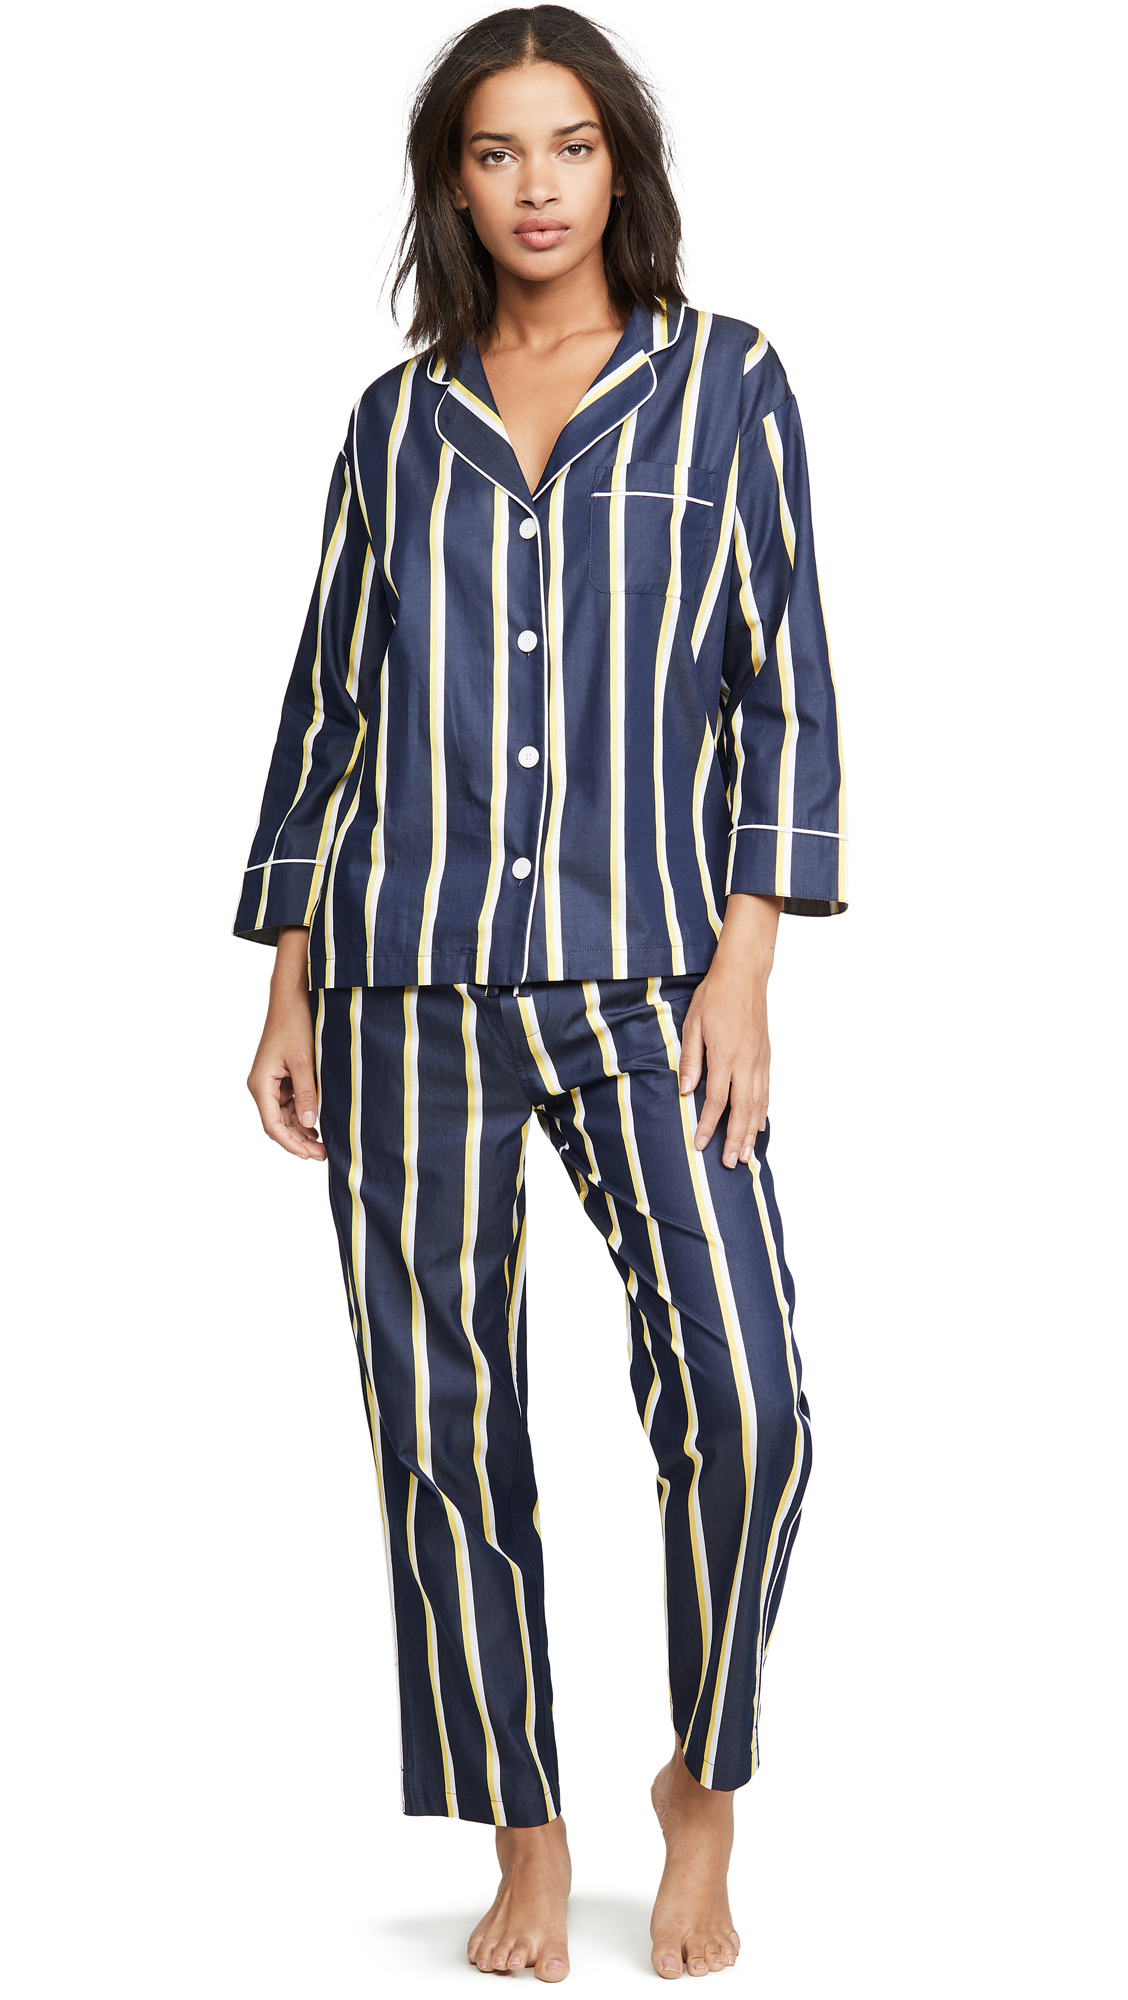 Sleepy Jones cotton PJ set